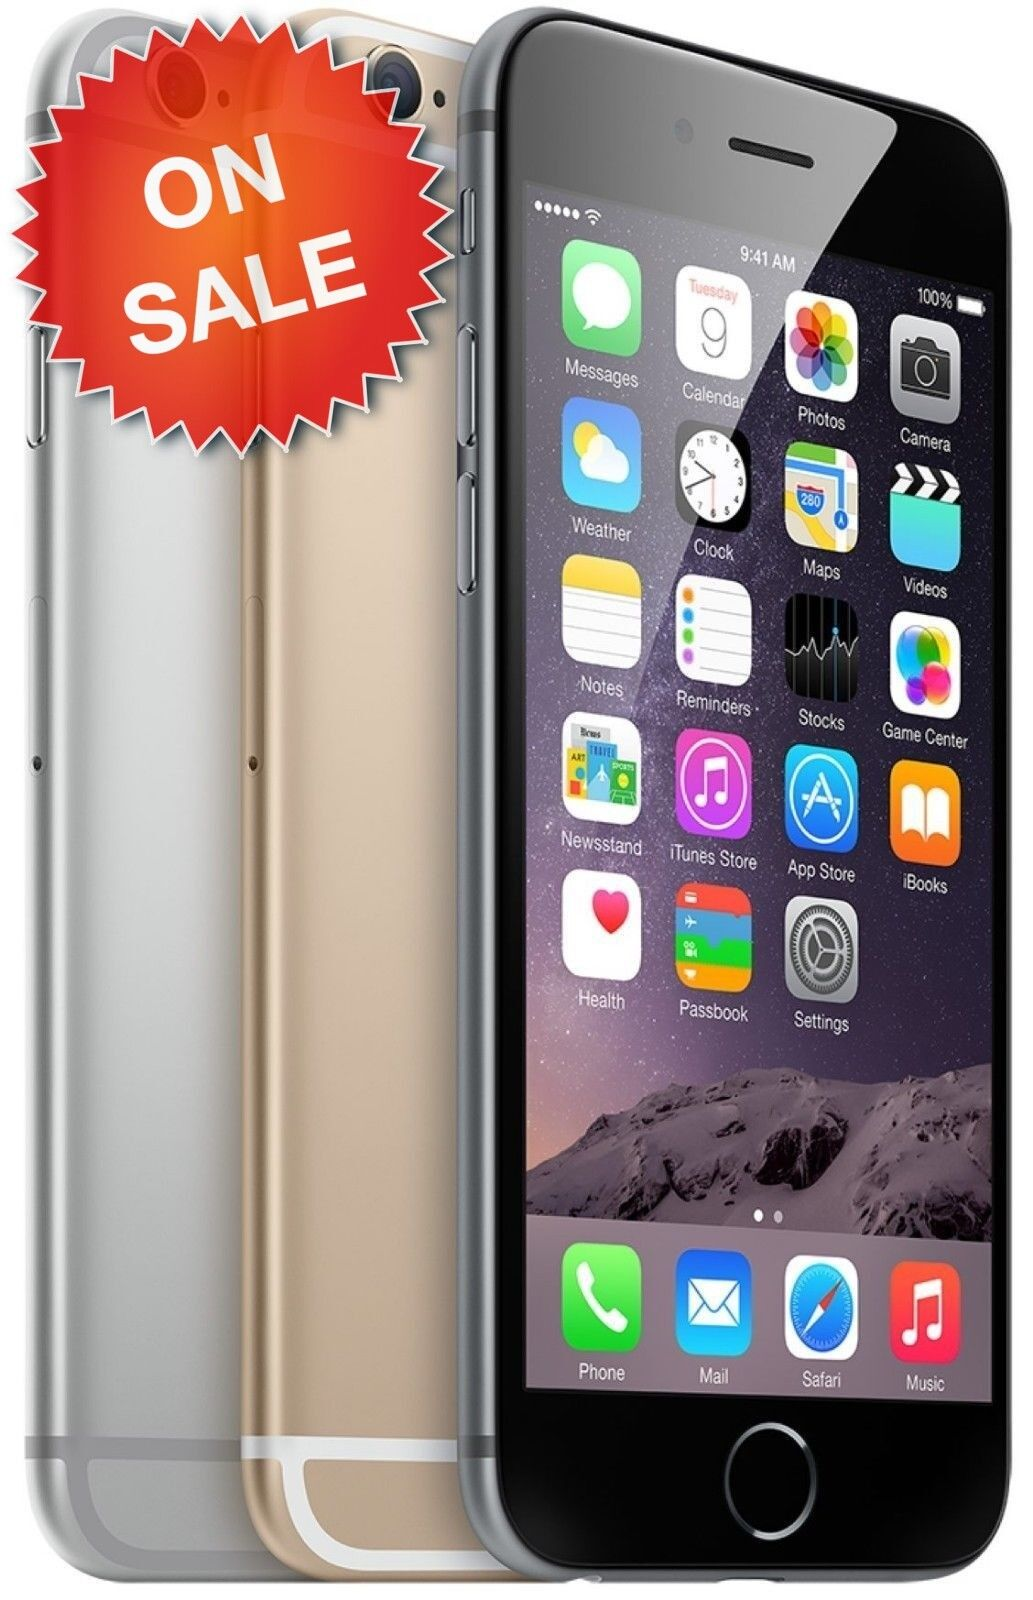 Apple iPhone 6 | Choose Your Carrier: Unlocked, Verizon, AT&T, T-Mobile, Sprint